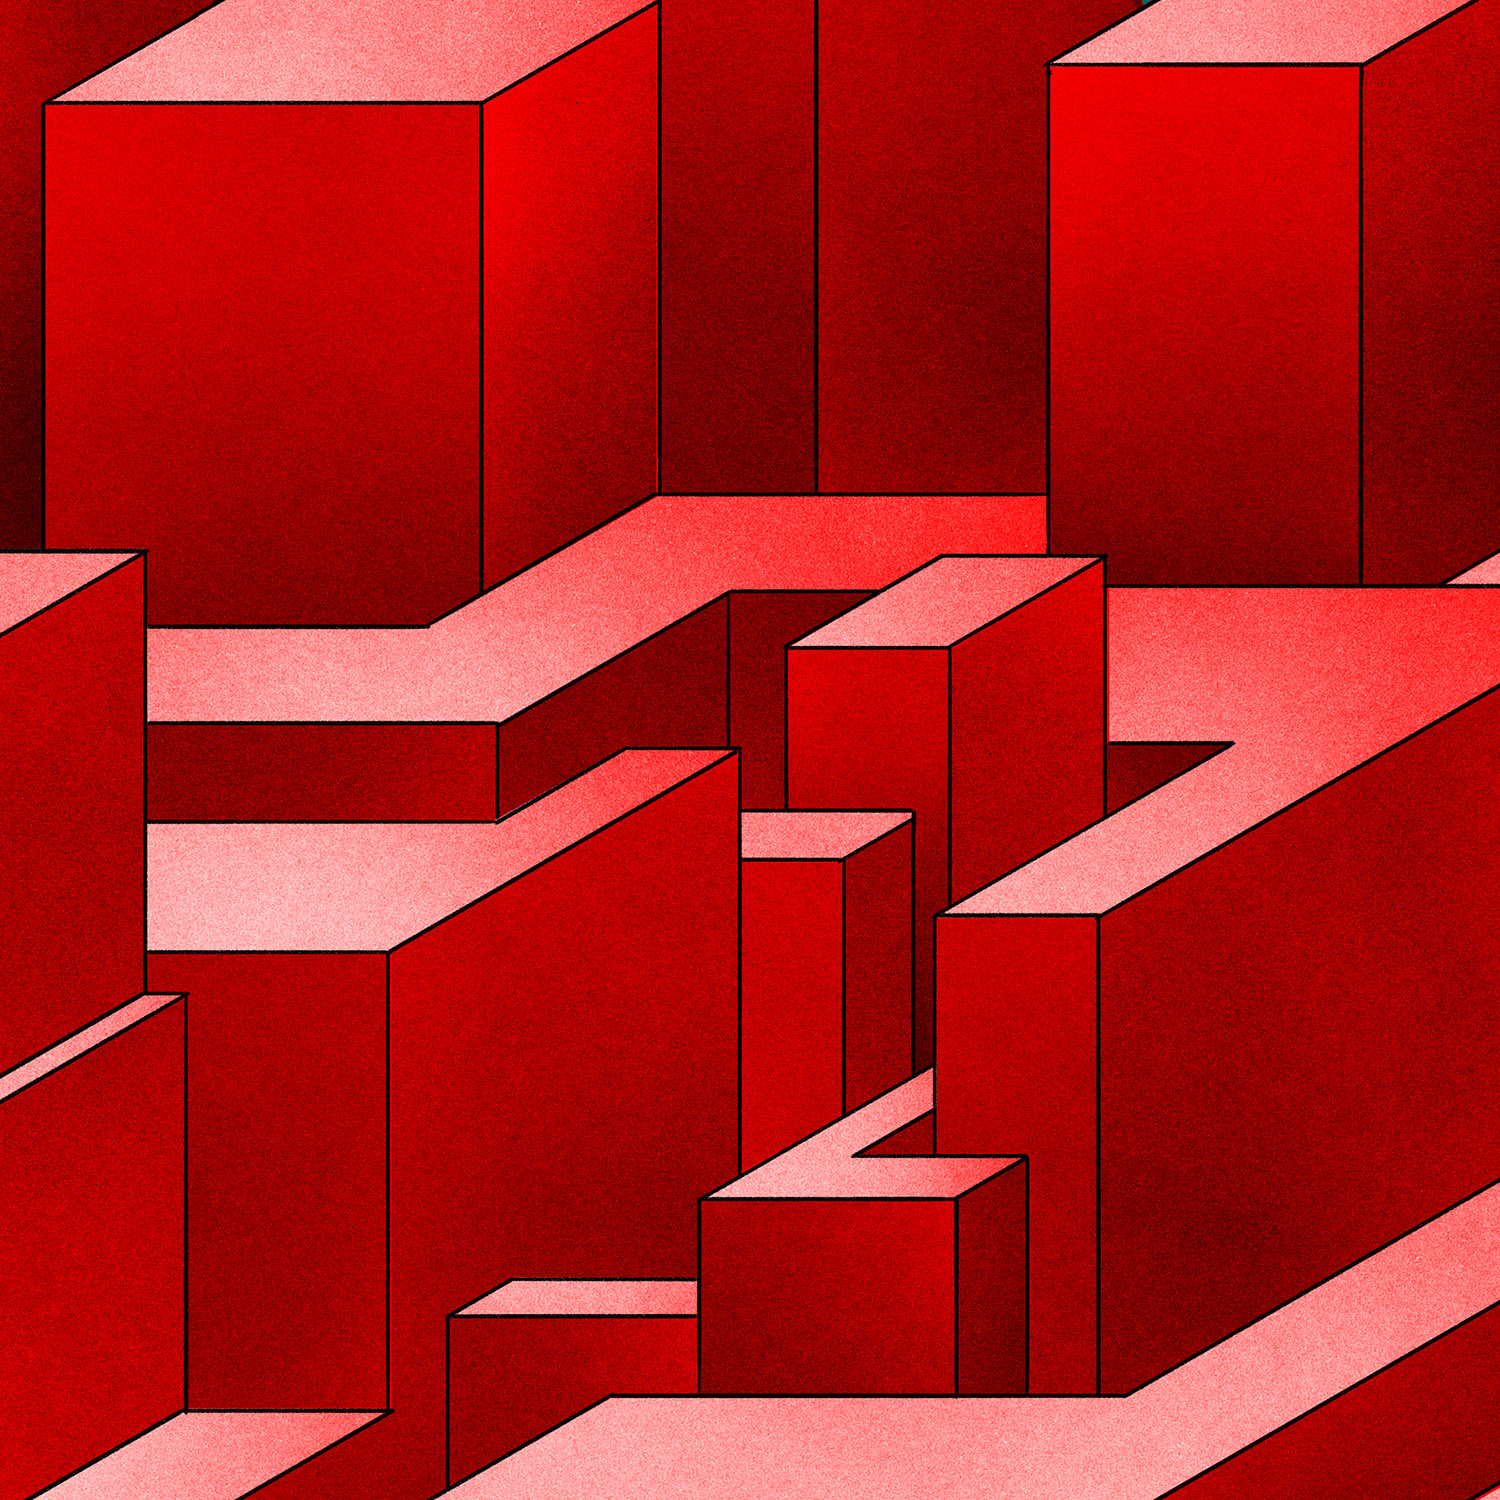 Illustration of red maze-like structure.